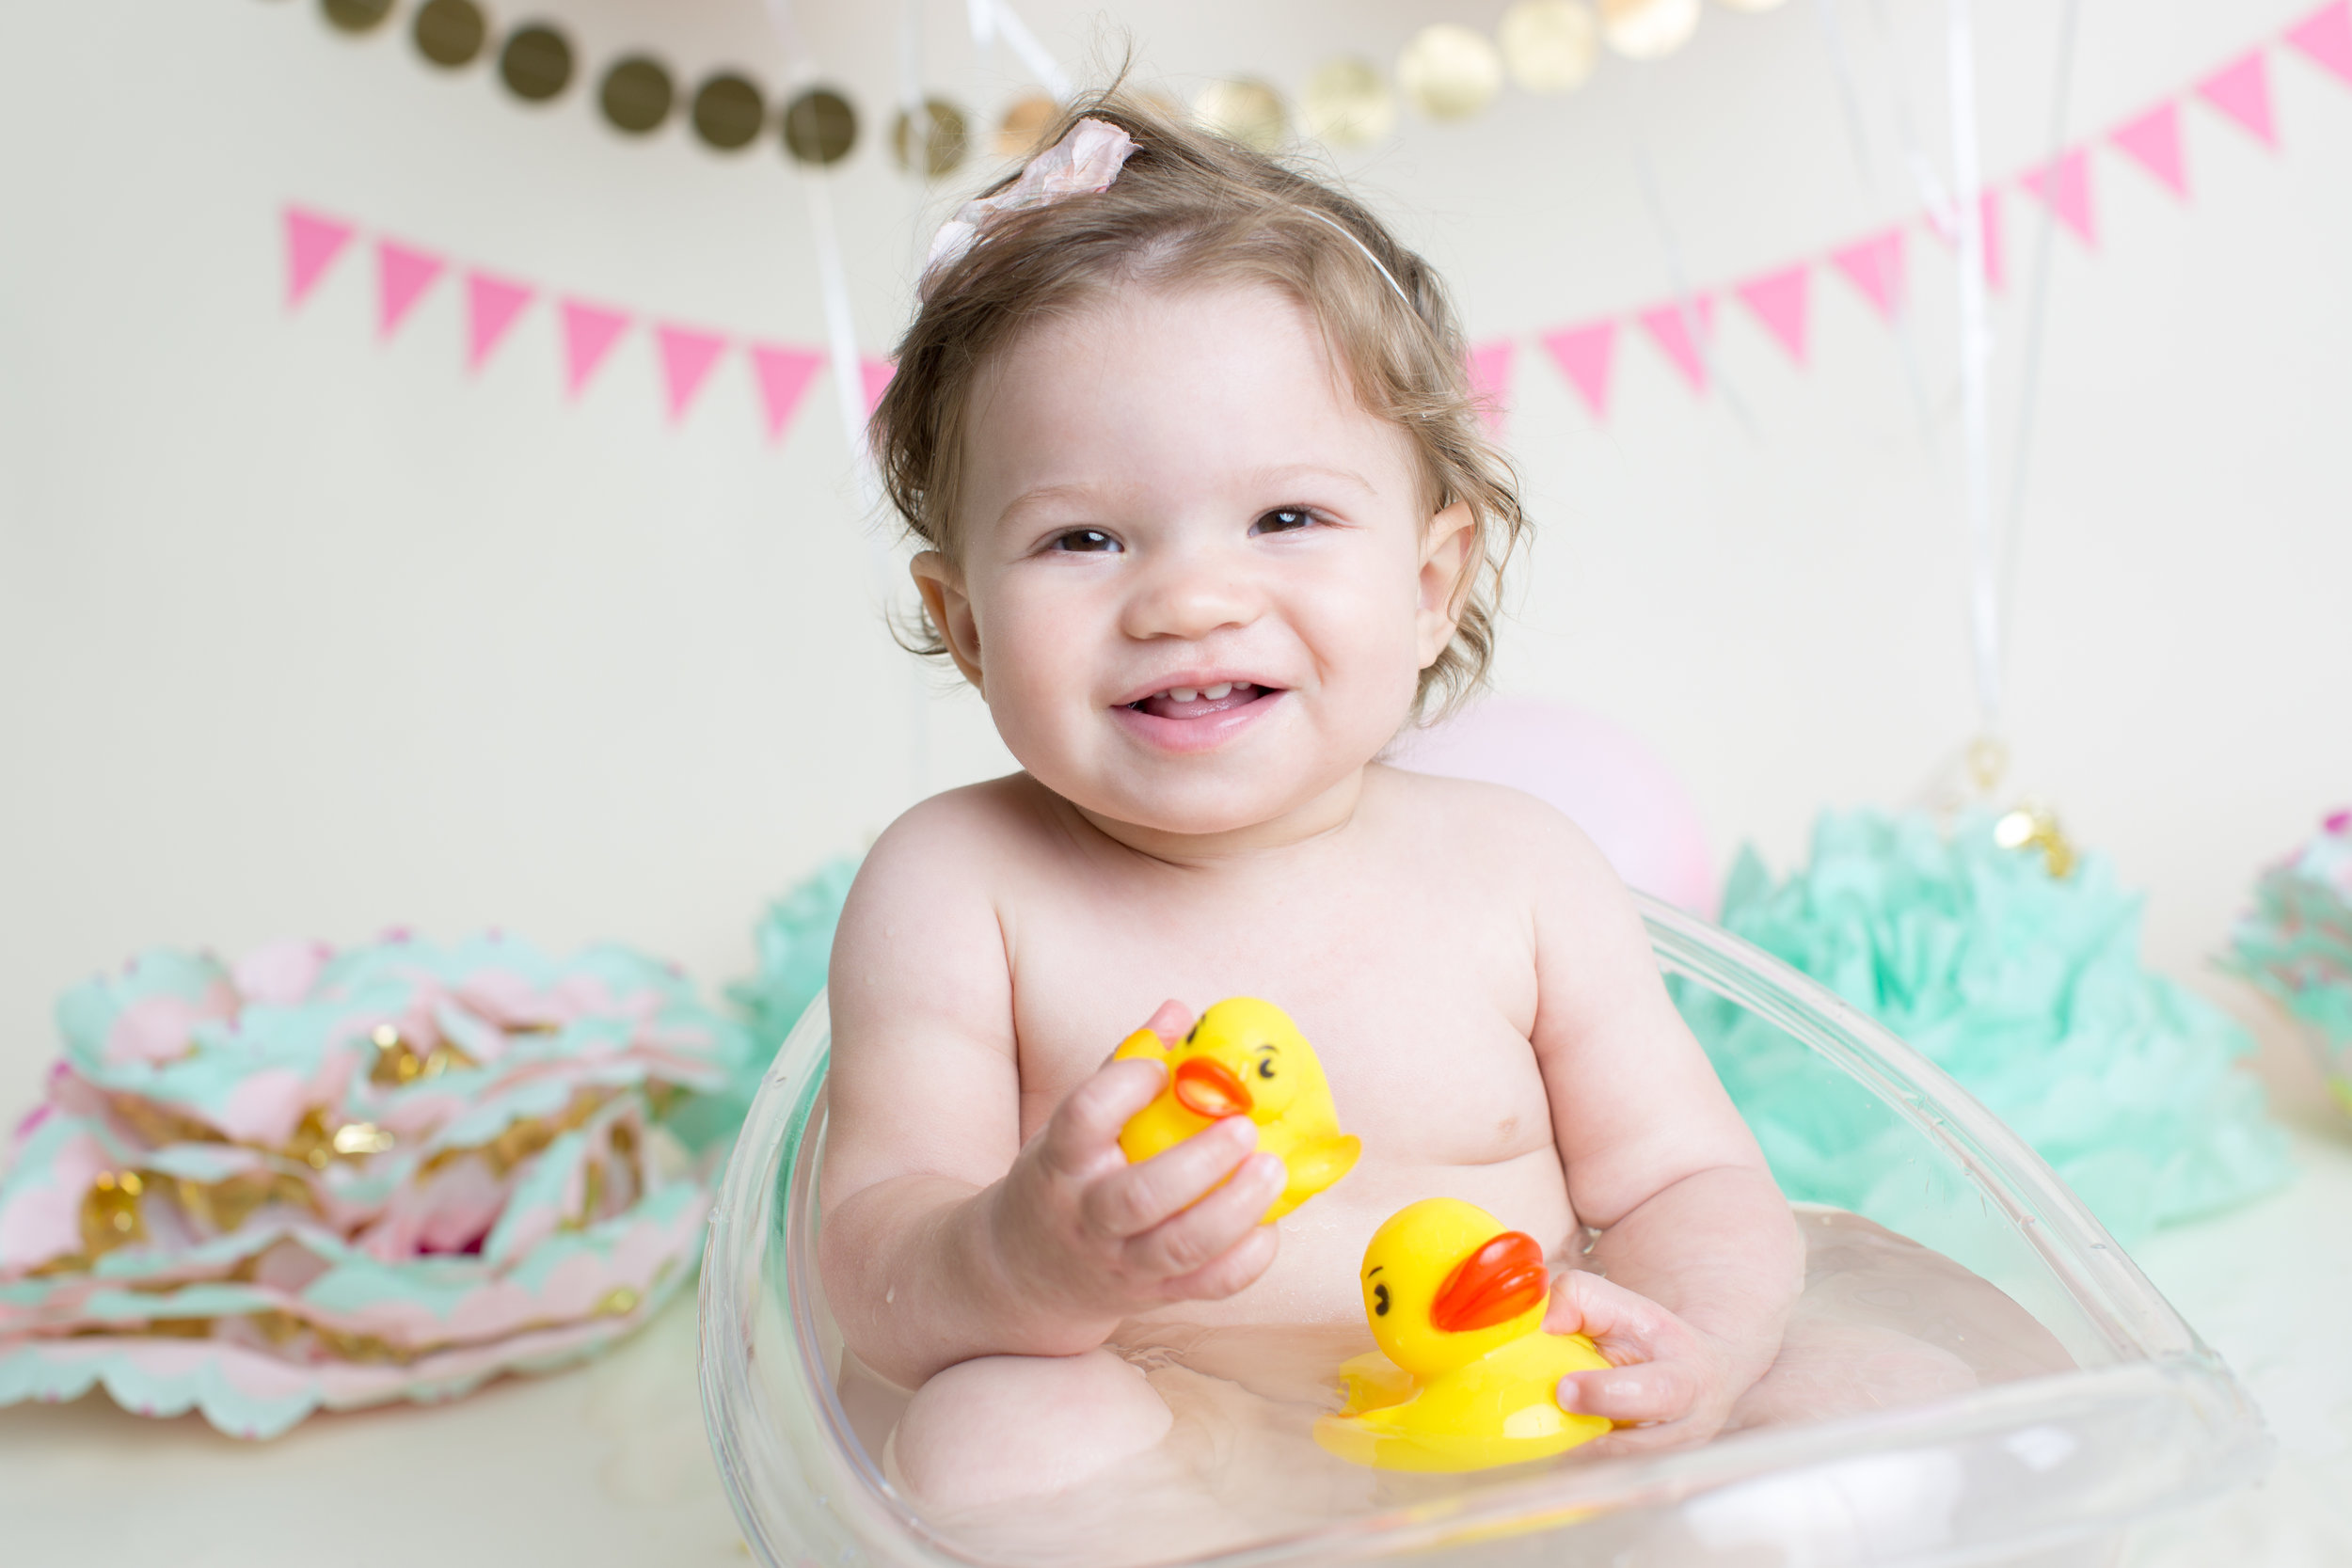 Boutique Bath Sessions  $175  Bath sessions are extra fun! You can choose from bubble baths complete with rubber duckies or a milk bath with a special garnish of your choice. This is great for ages 3 and under. I'll fill a large tub with warm water and powered milk and then a garnish of your choice. We've done cookies, flowers, and cereal just to name a few. These sessions last 20 minutes and galleries typically have 15-20 photos.